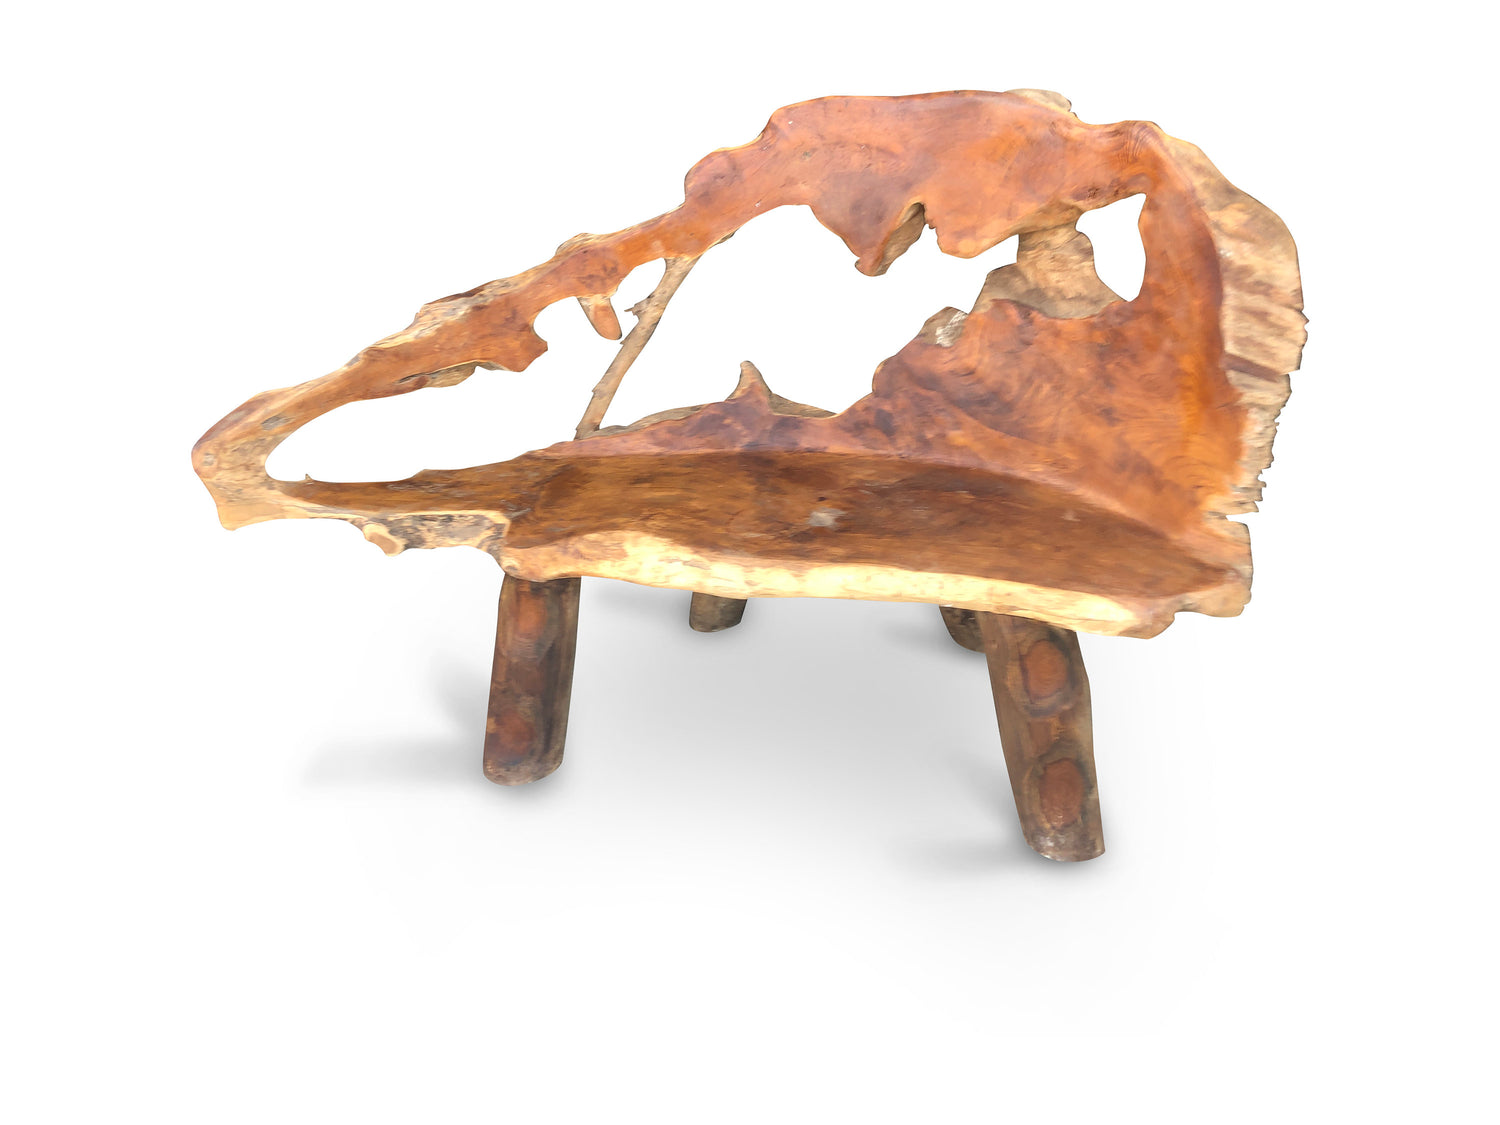 UMBUZÖ Reclaimed Teak Root Bench